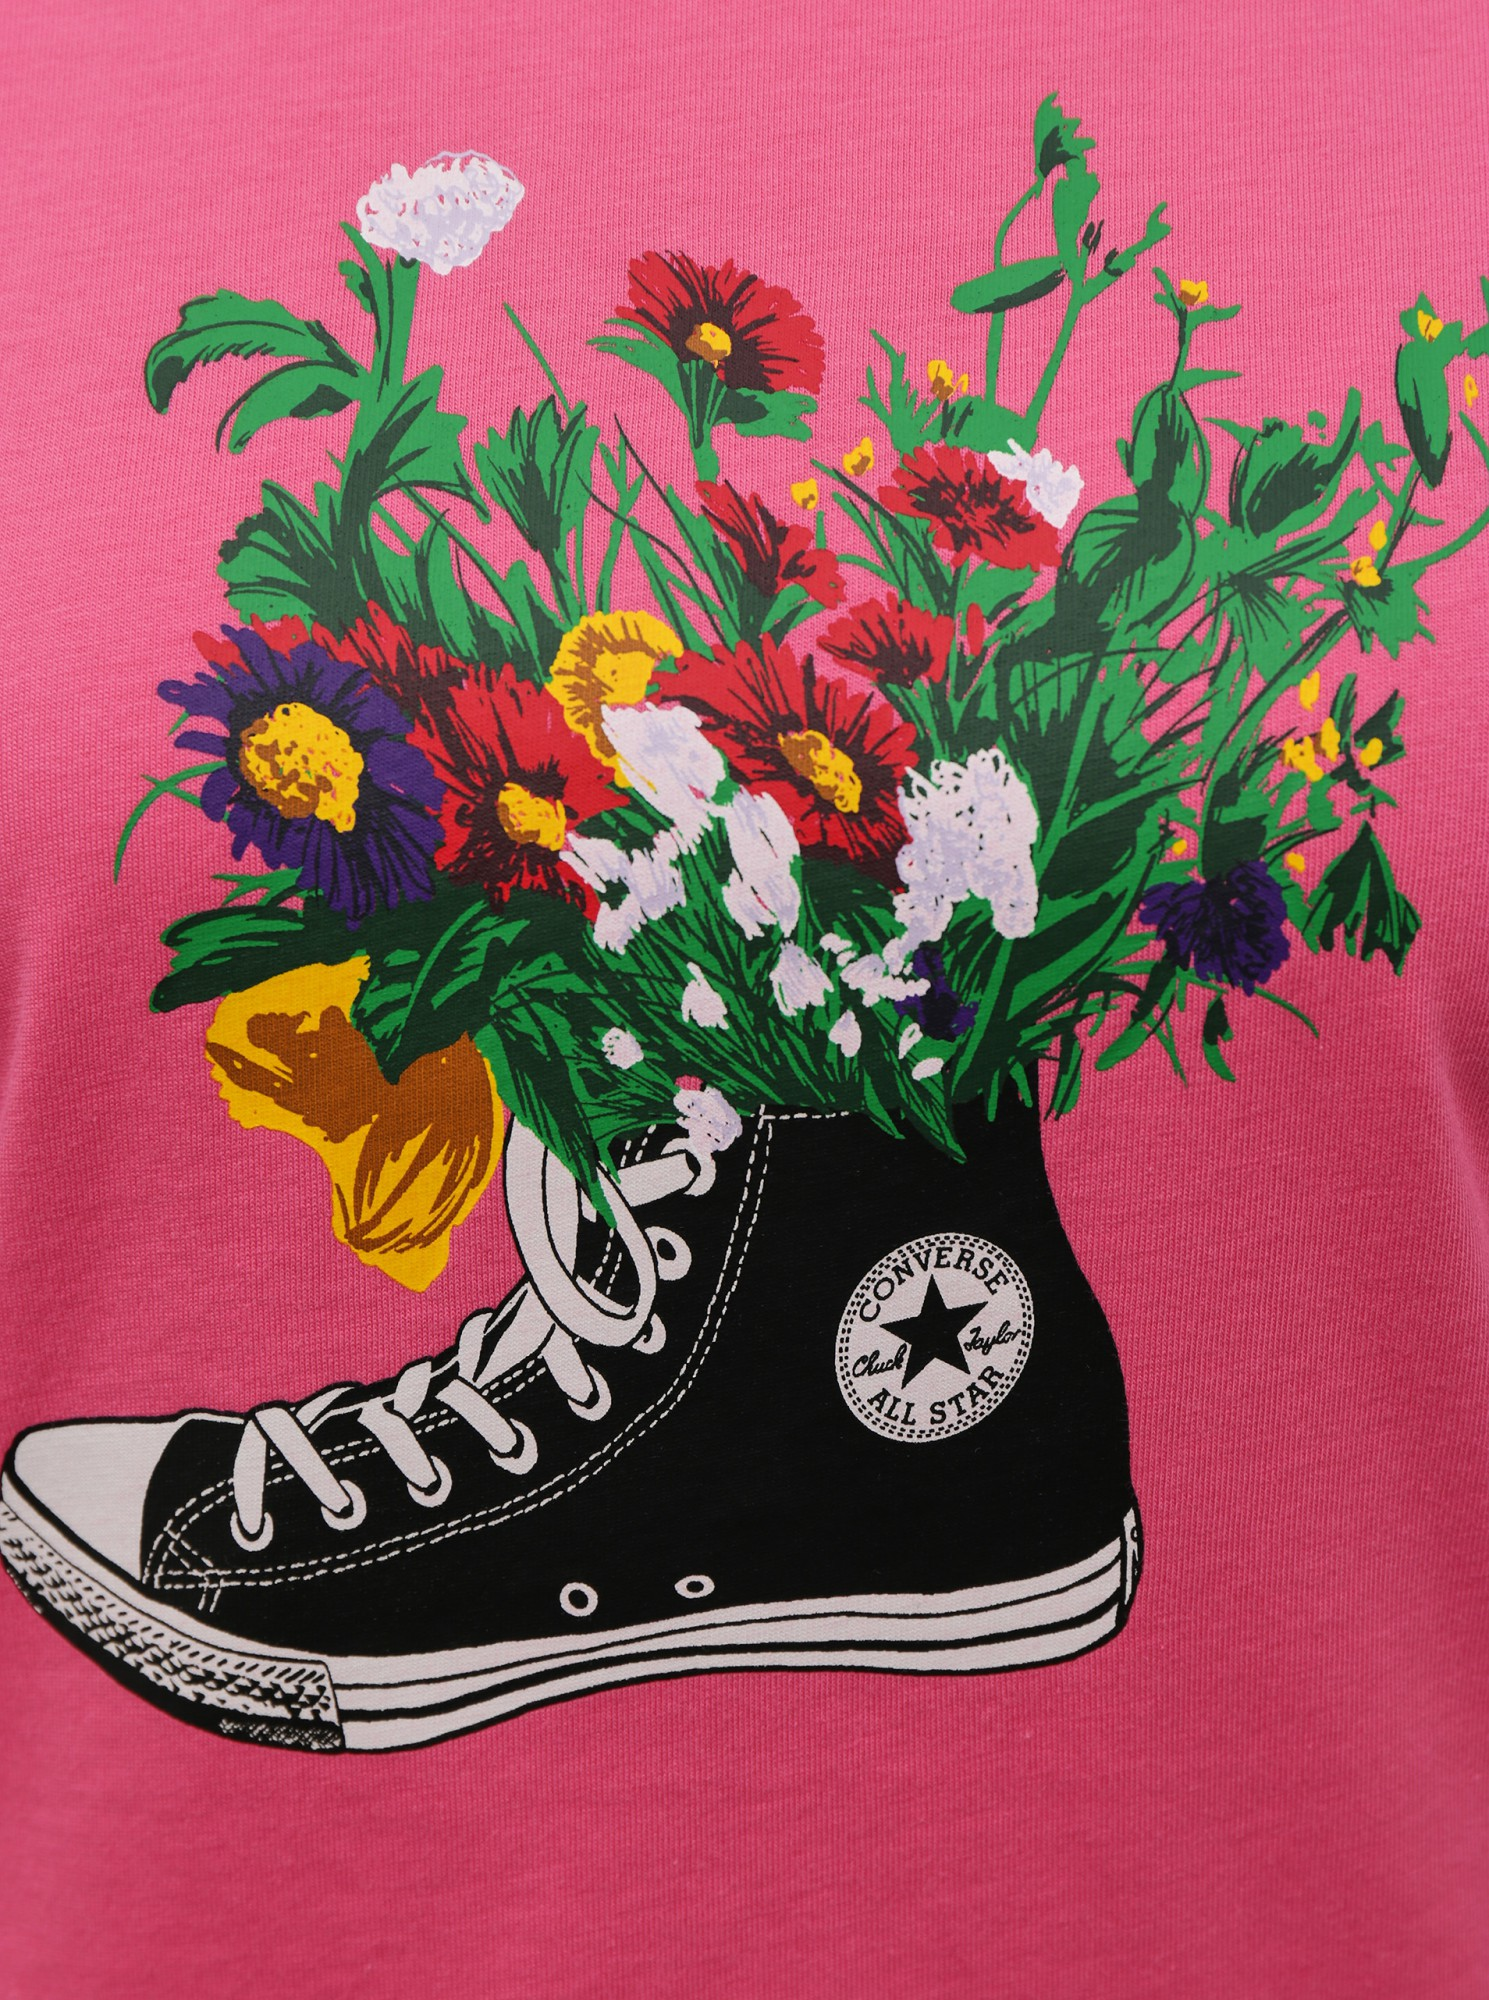 Converse roz tricou Flowers Are Blooming